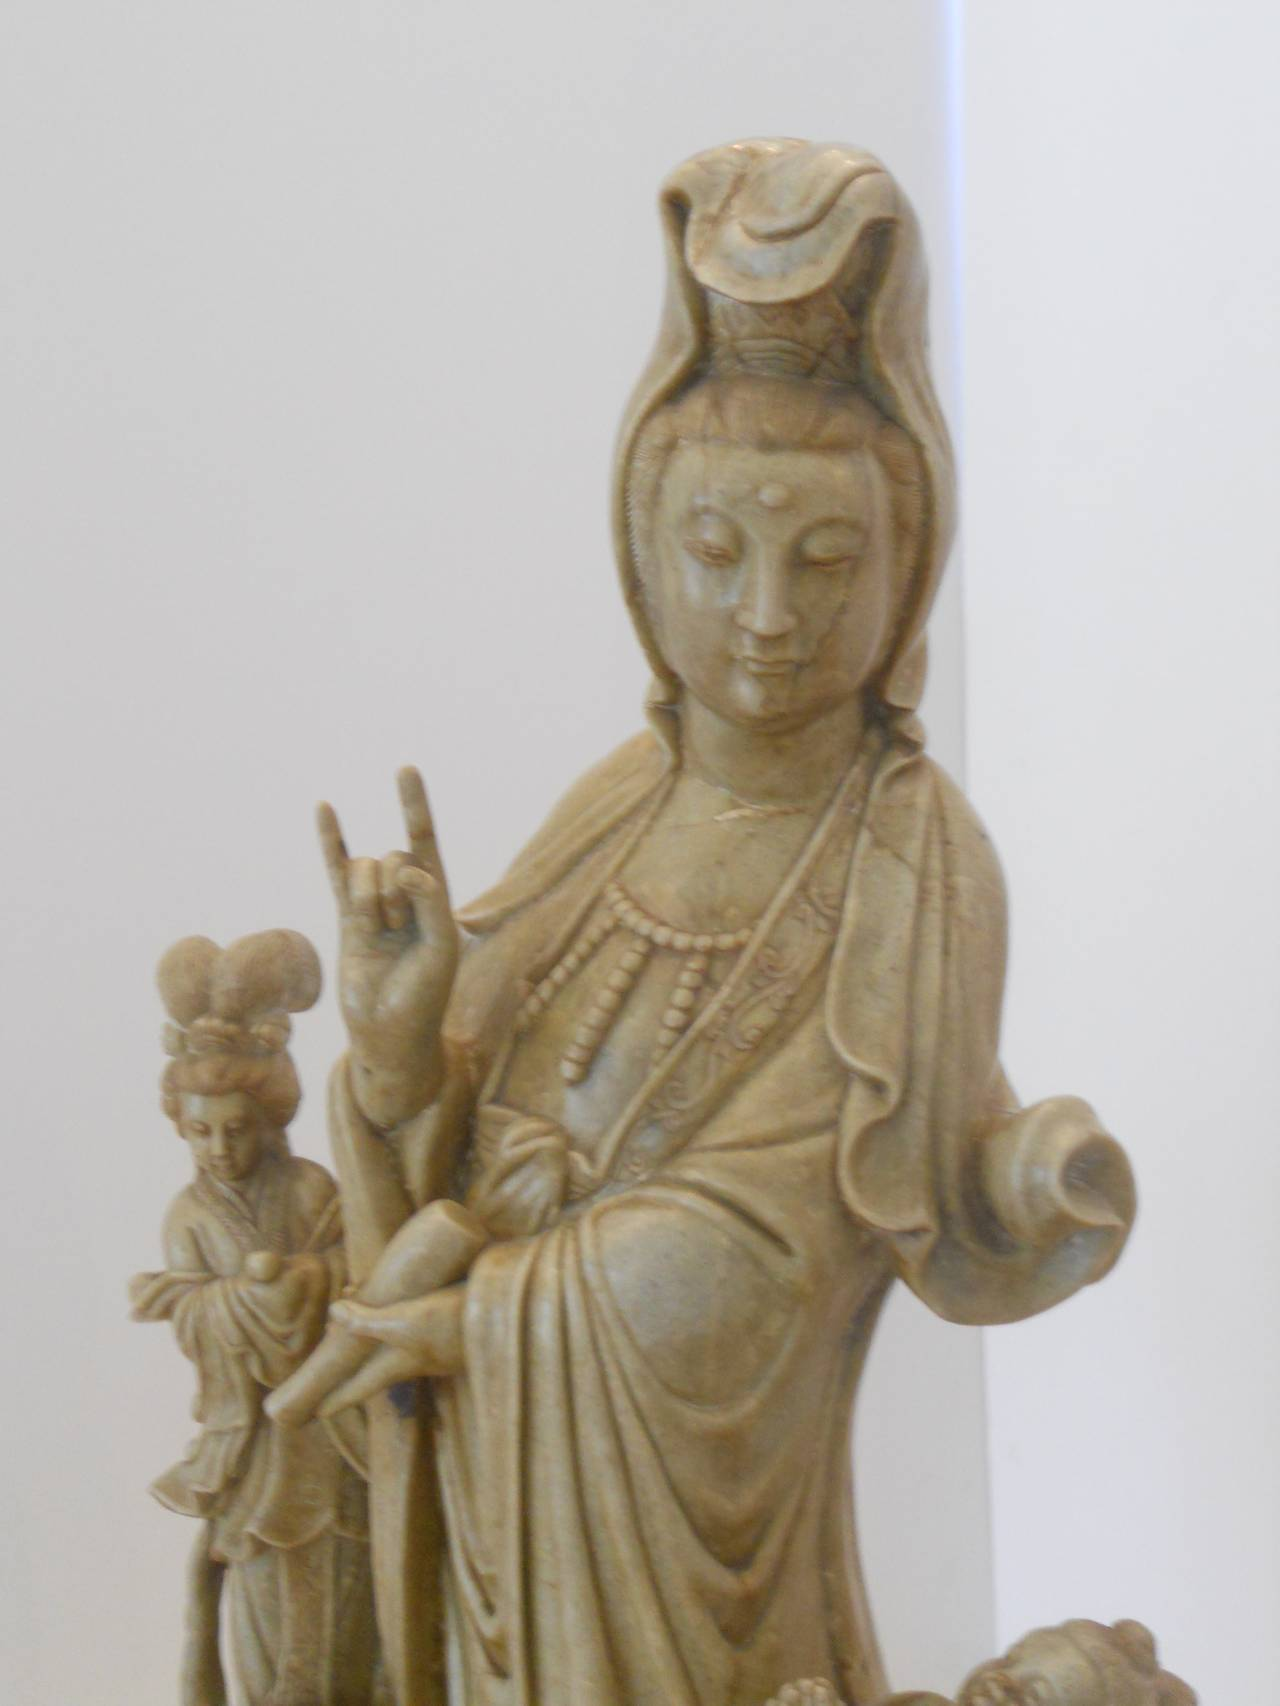 Exceptional standing Chinese Quanyin or Guanyin with a pair companion figures including a small child on a lotus blossom.    The sculpture is hand-carved of soapstone and detailed from all sides. The robes of the primary figure are beautifully